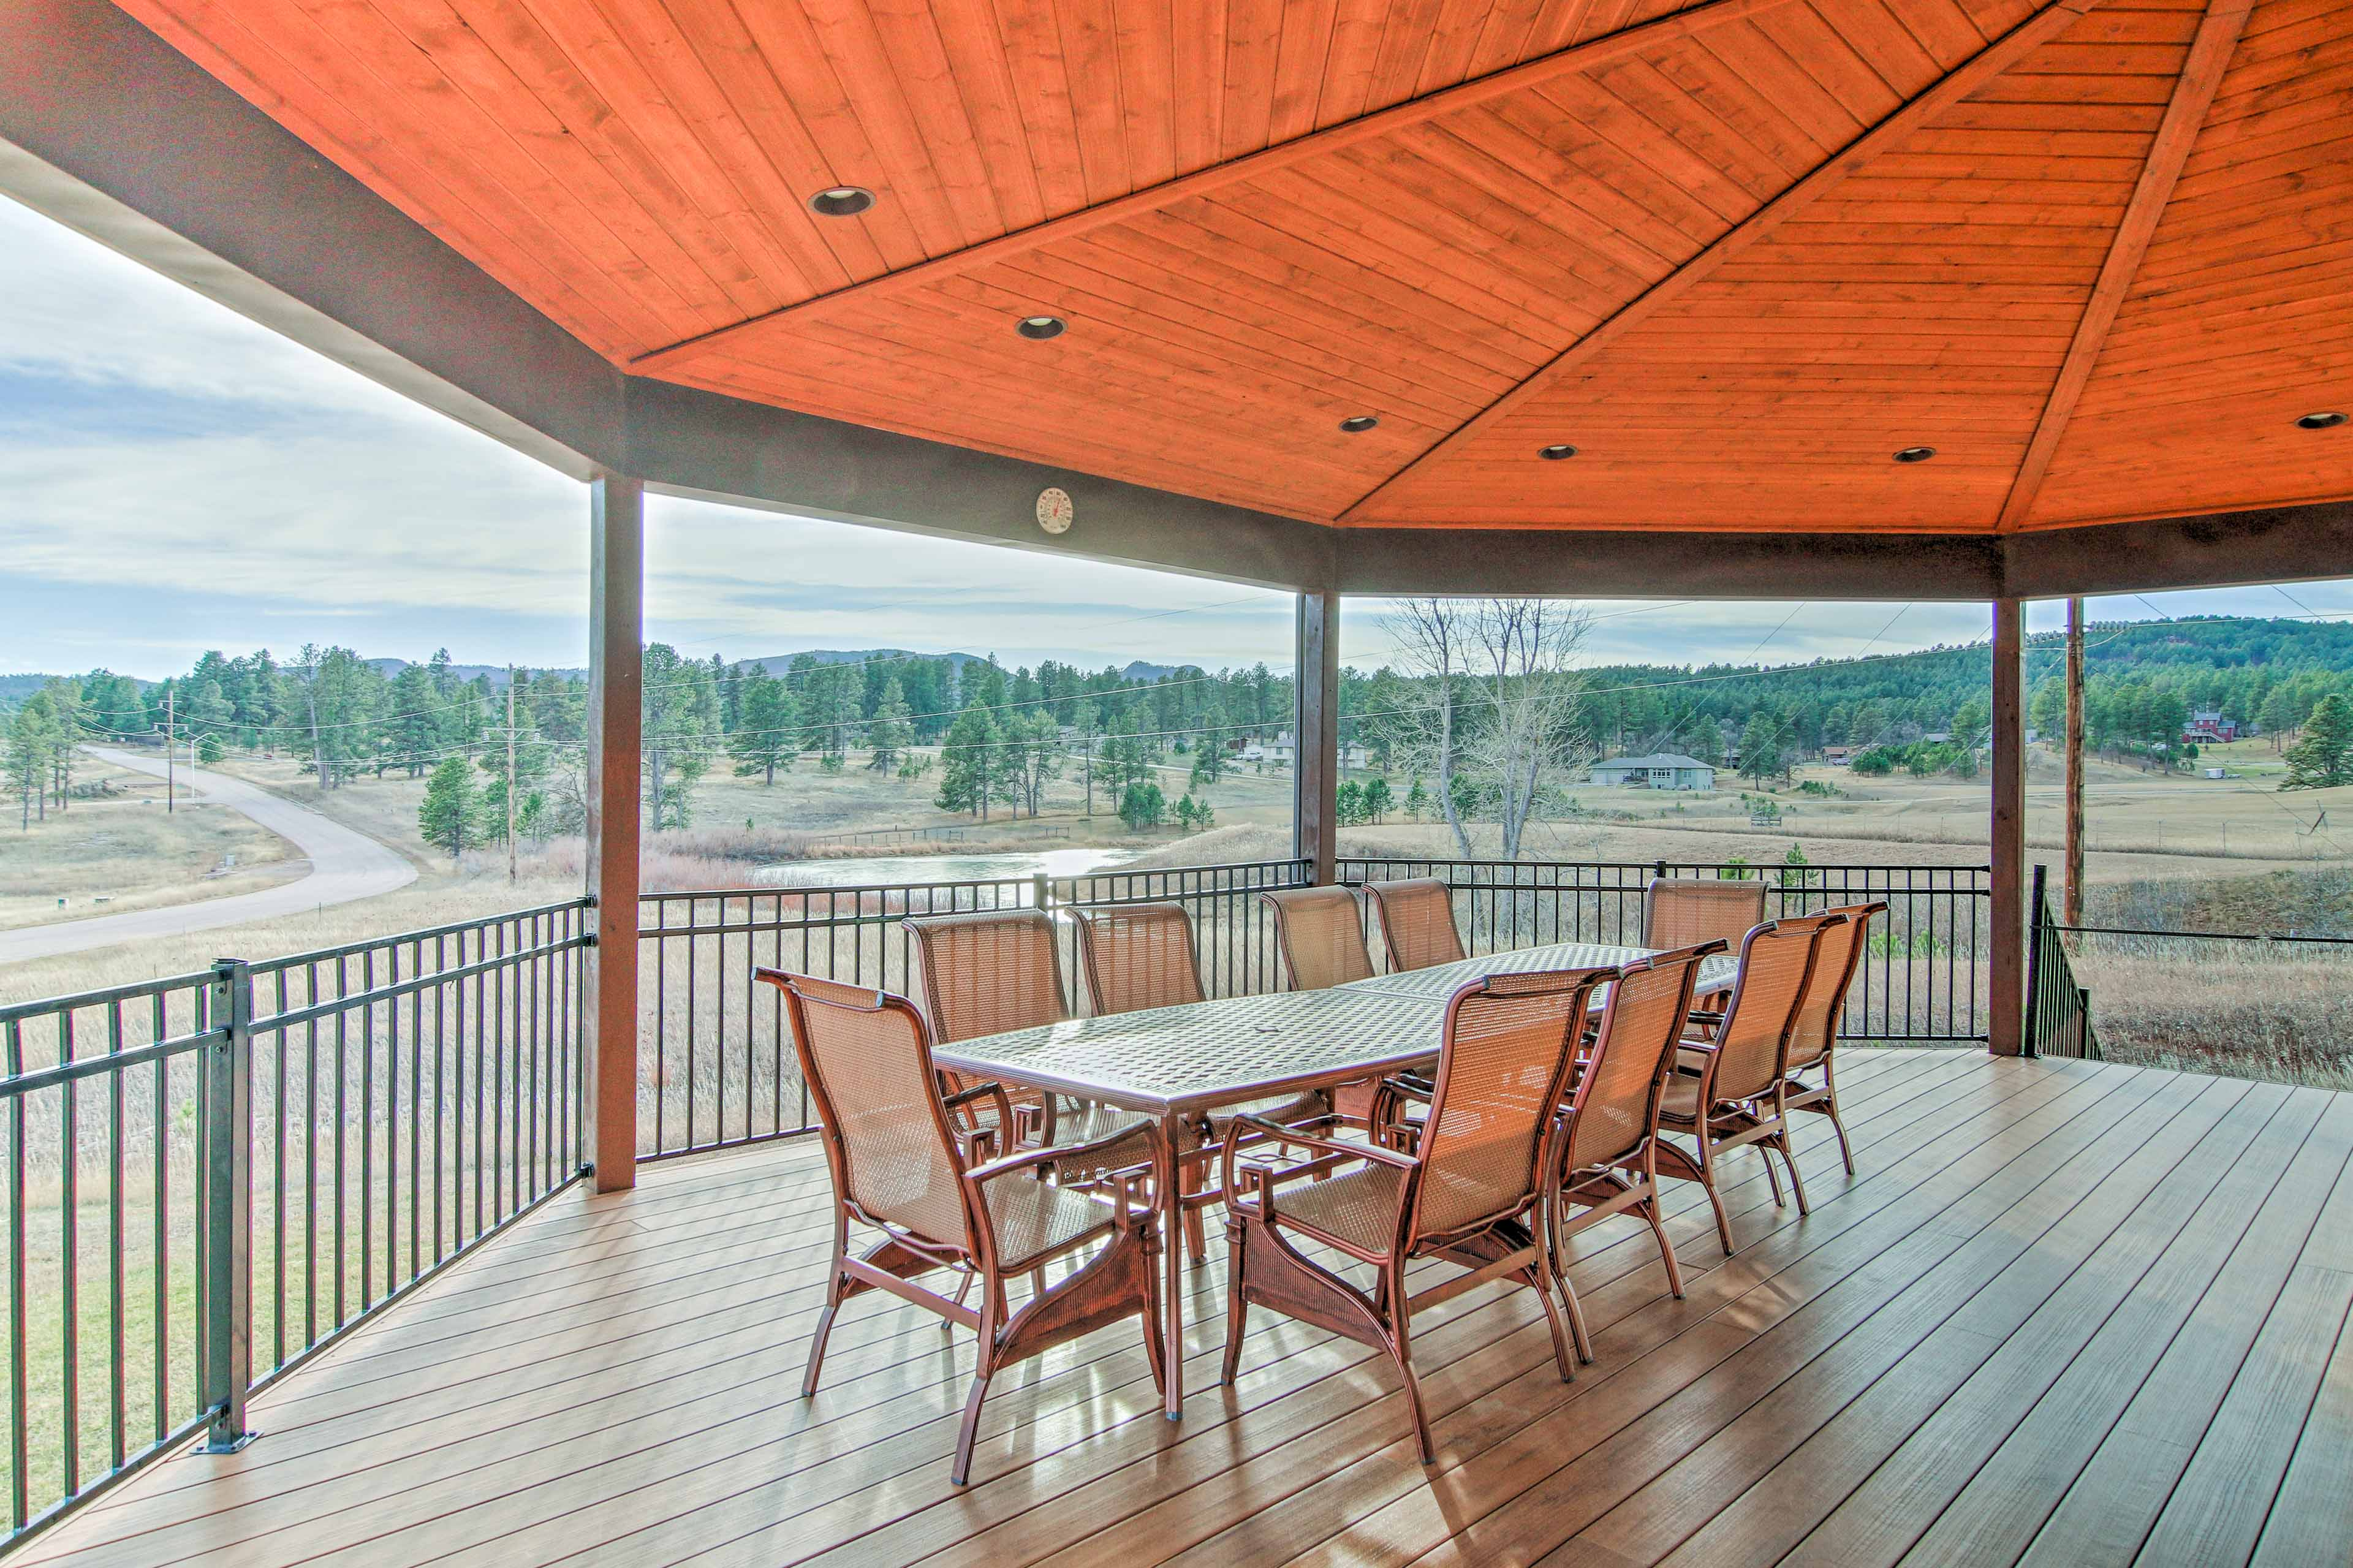 Treat guests to an al fresco dining experience on the shaded deck.